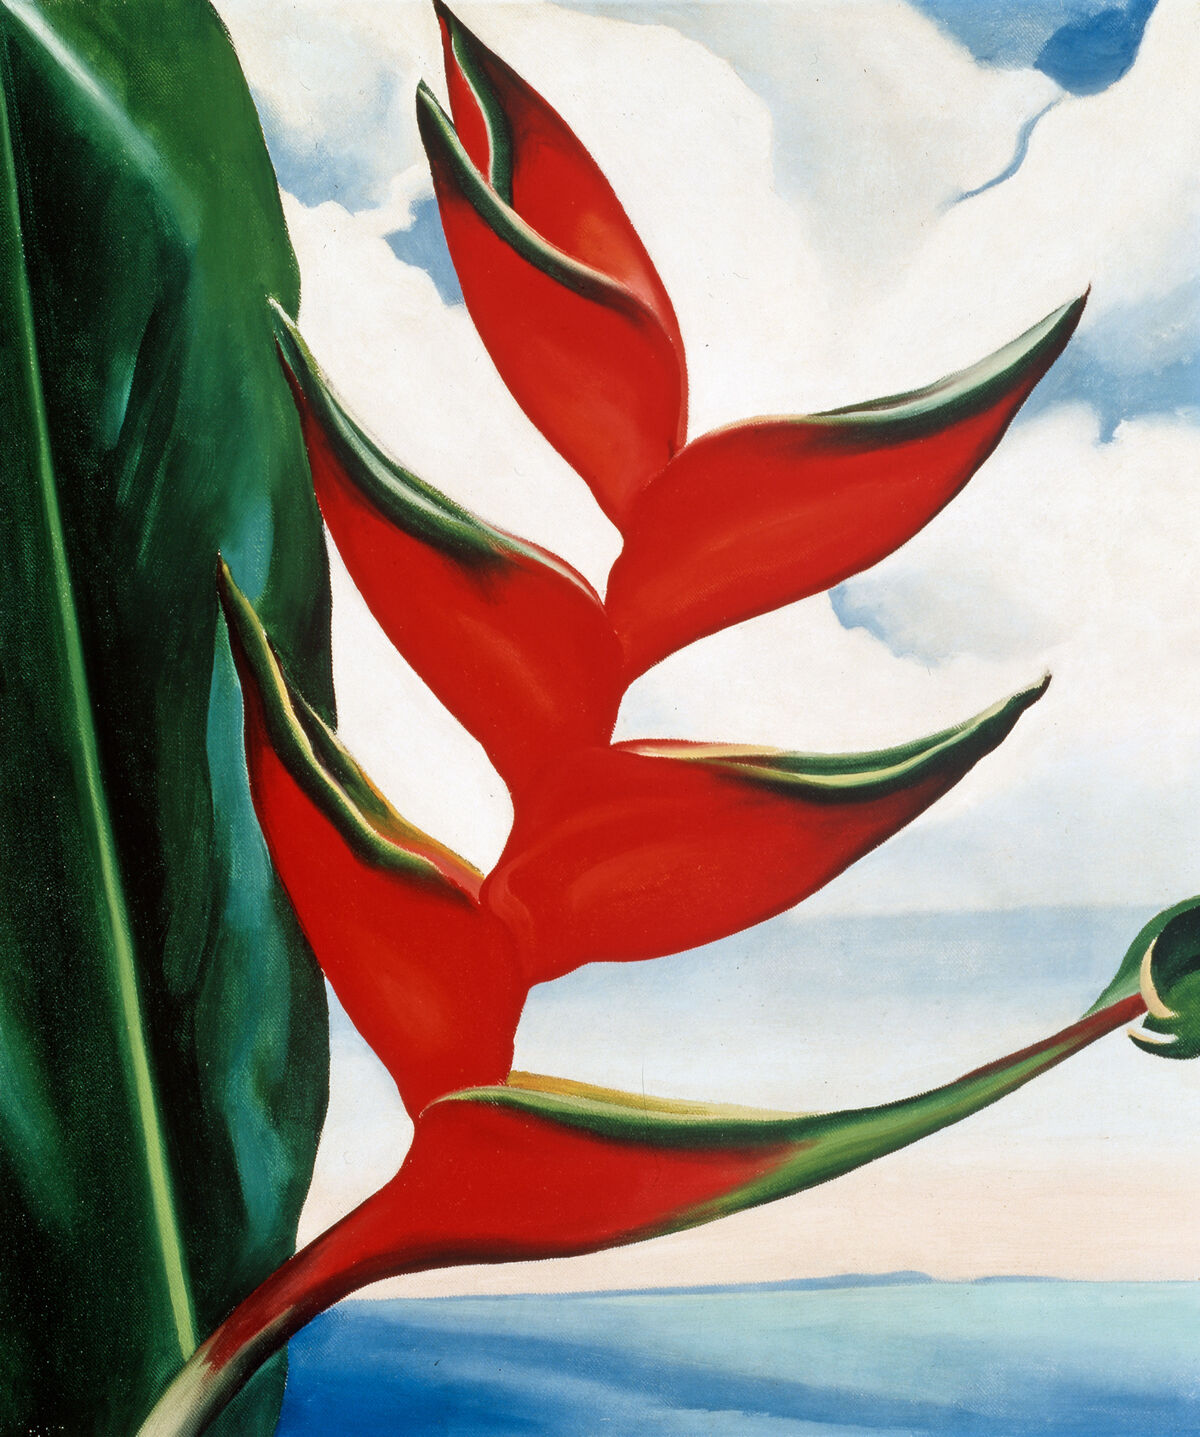 Georgia O'Keeffe, Heliconia, Crab's Claw Ginger, 1939. © 2018 Georgia O'Keeffe Museum / Artists Rights Society (ARS), New York. Courtesy of the New York Botanical Garden.